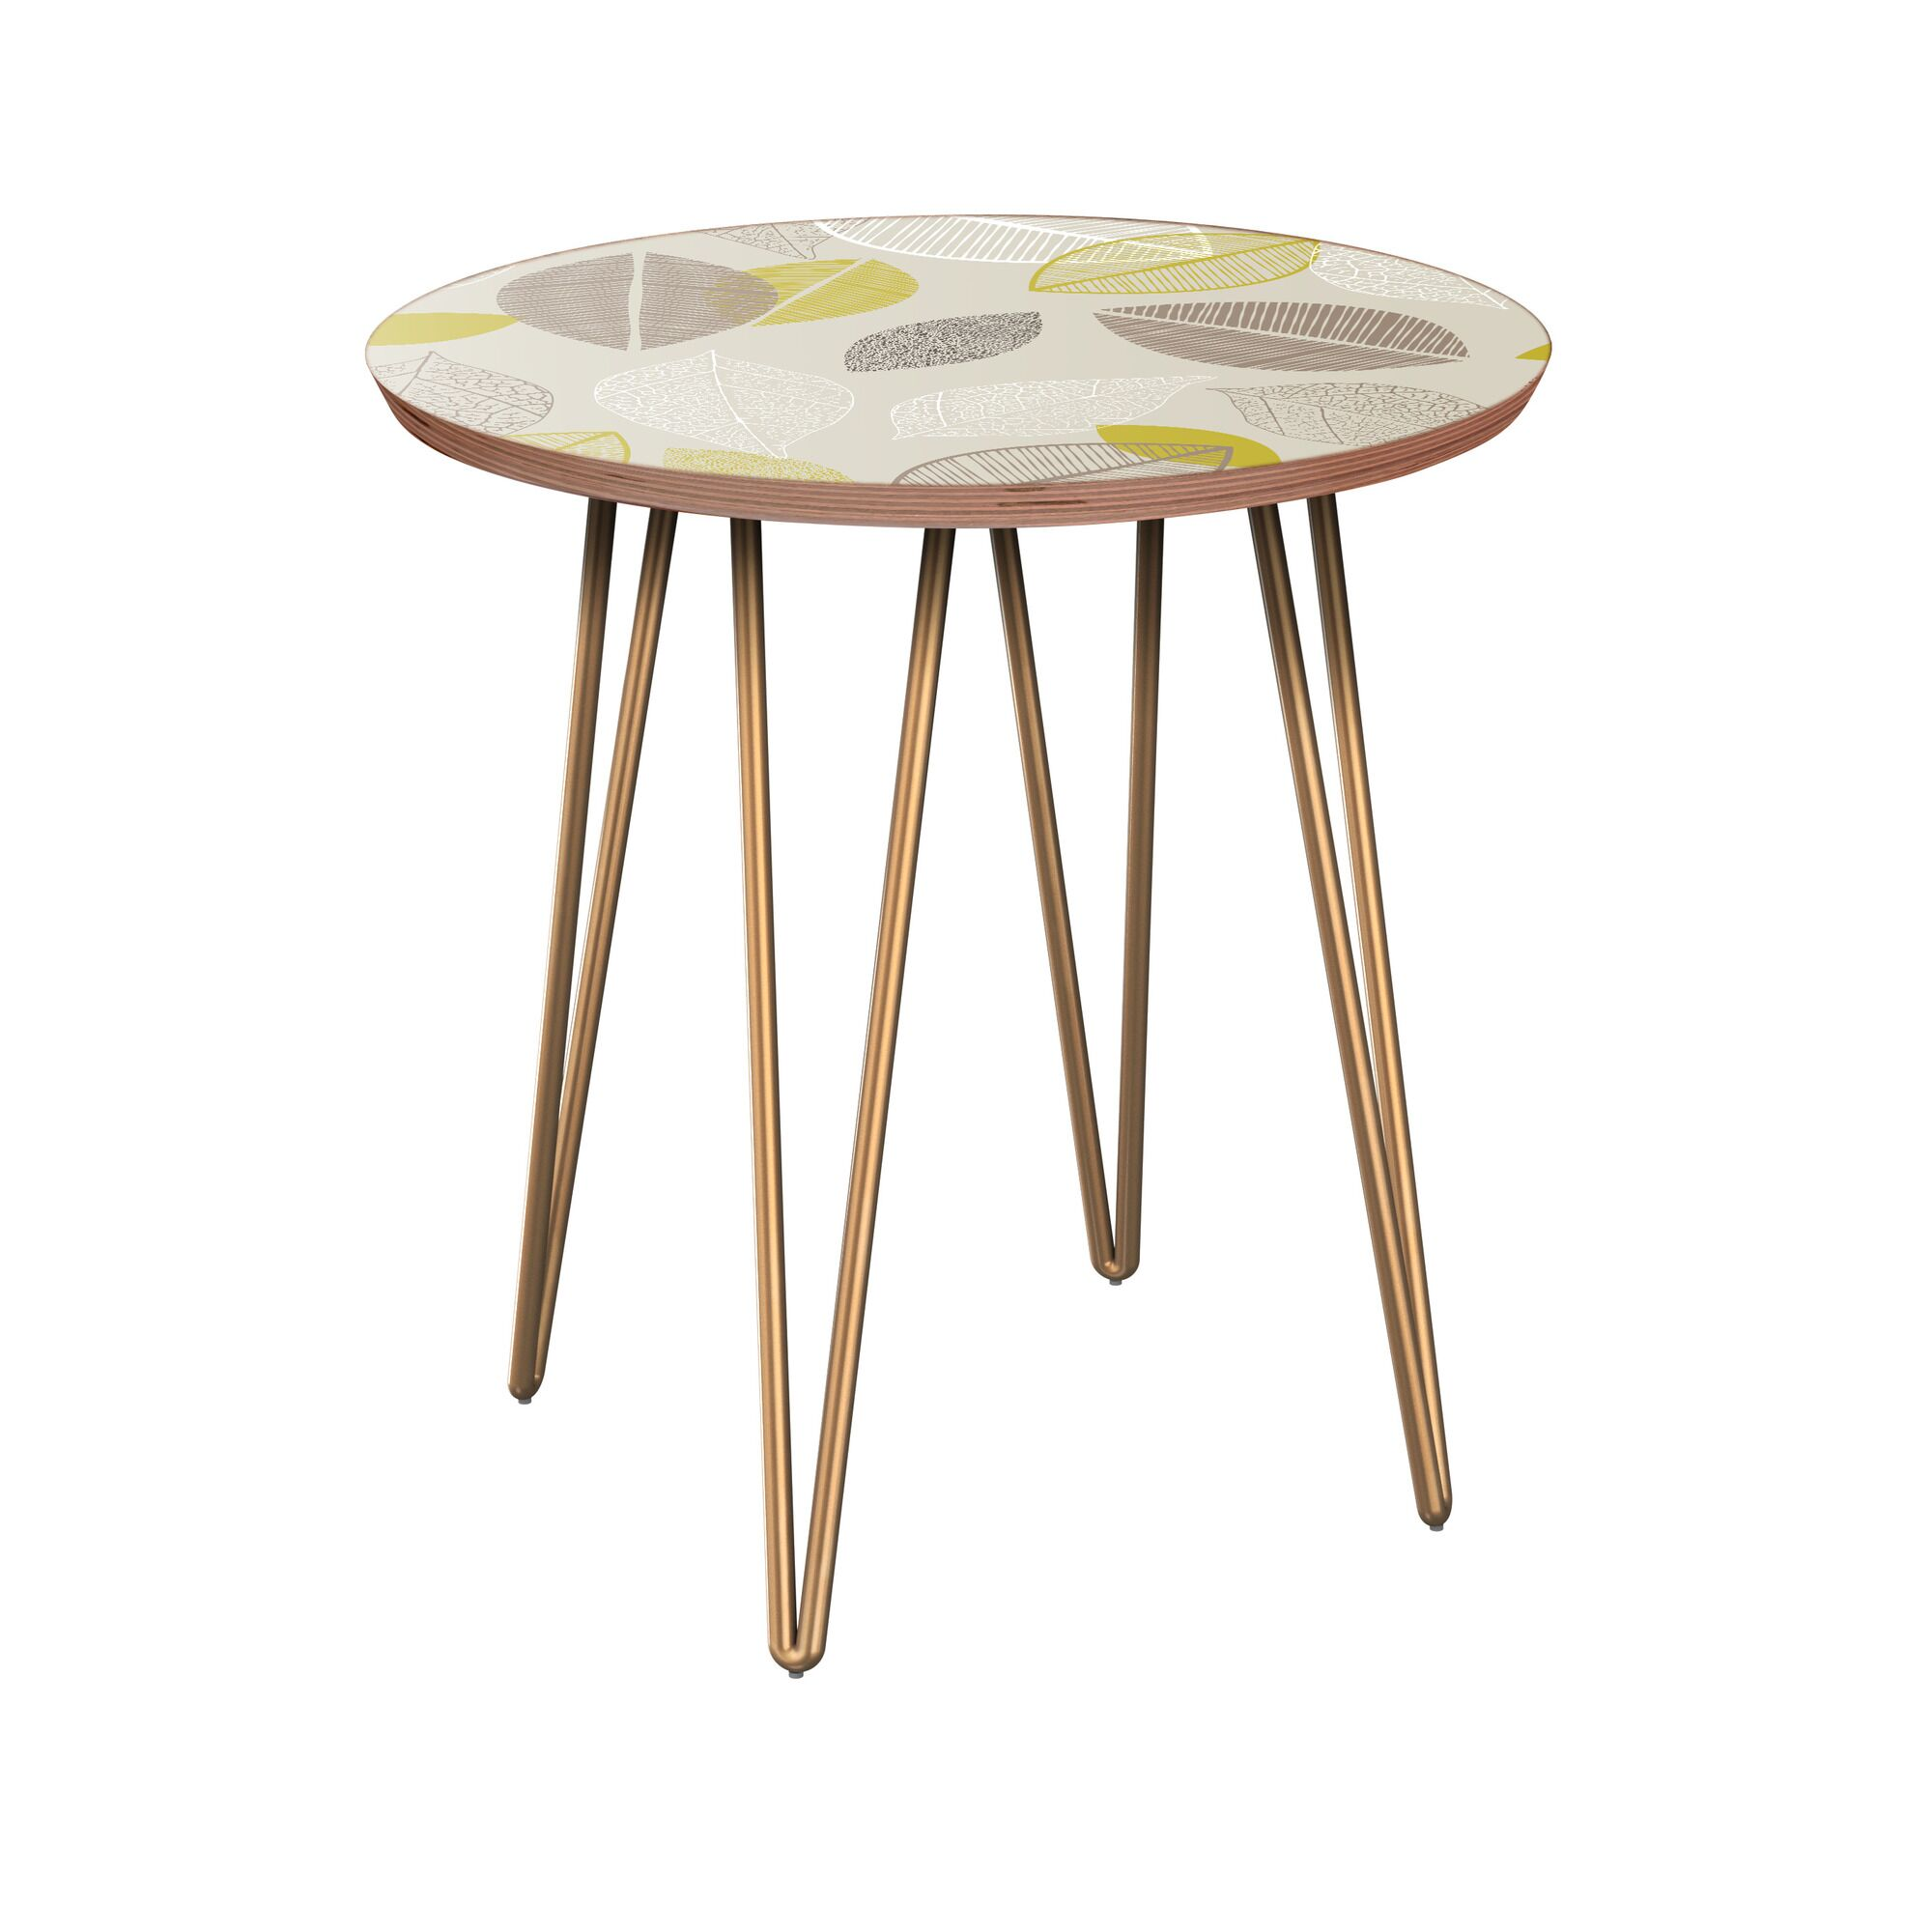 Julianna End Table Table Base Color: Brass, Table Top Boarder Color: Walnut, Table Top Color: Blue